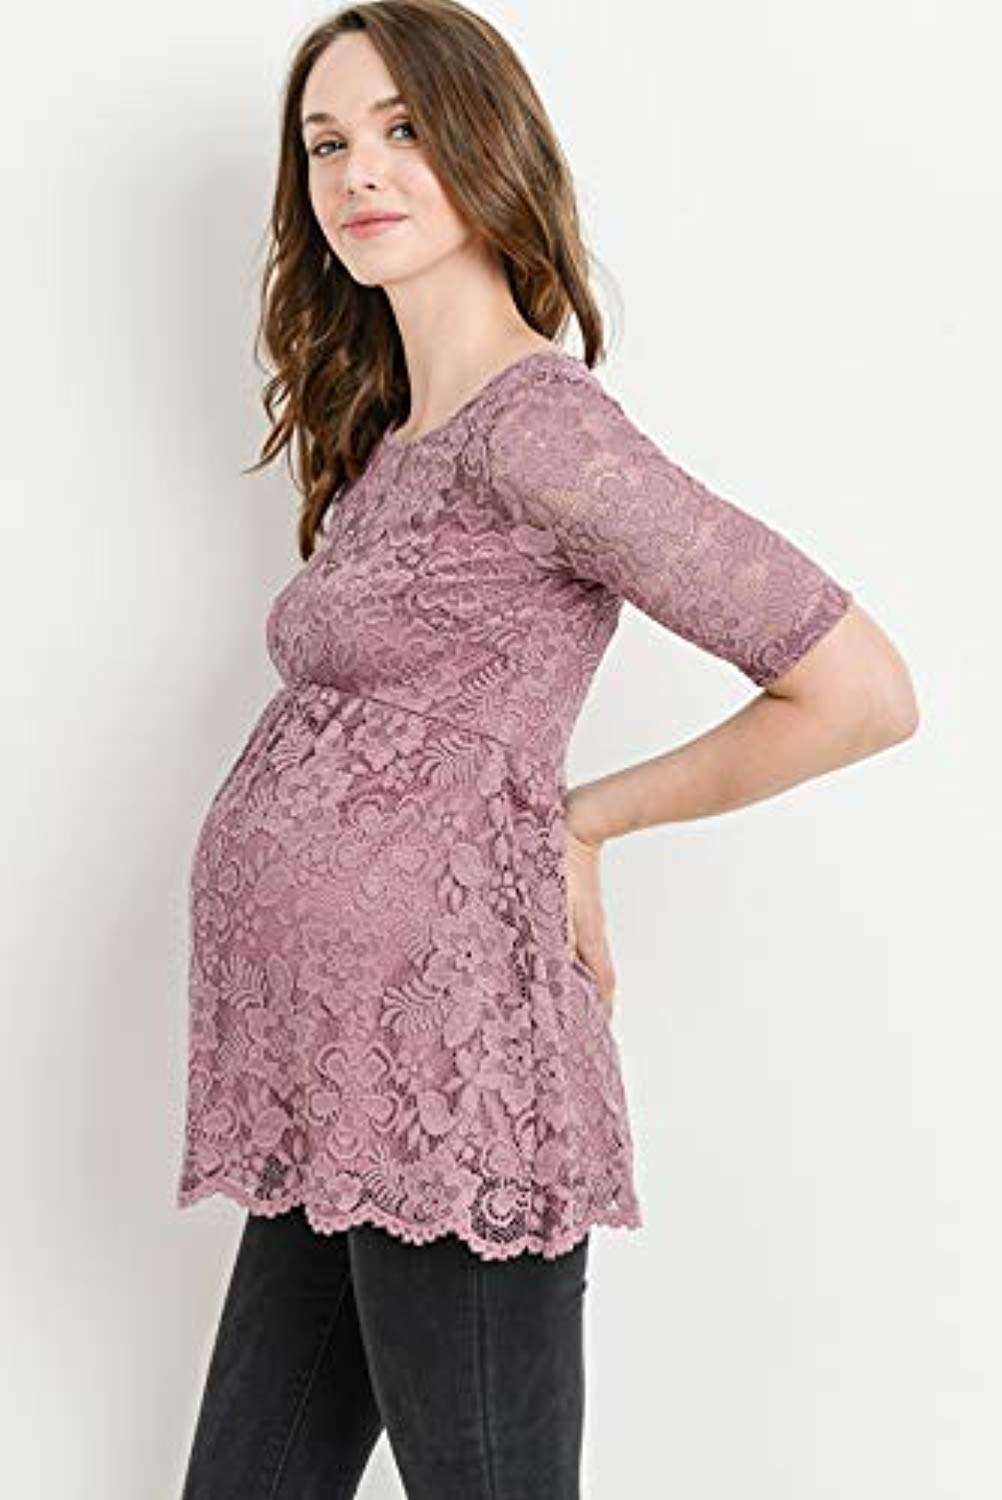 Cute Maternity Tops